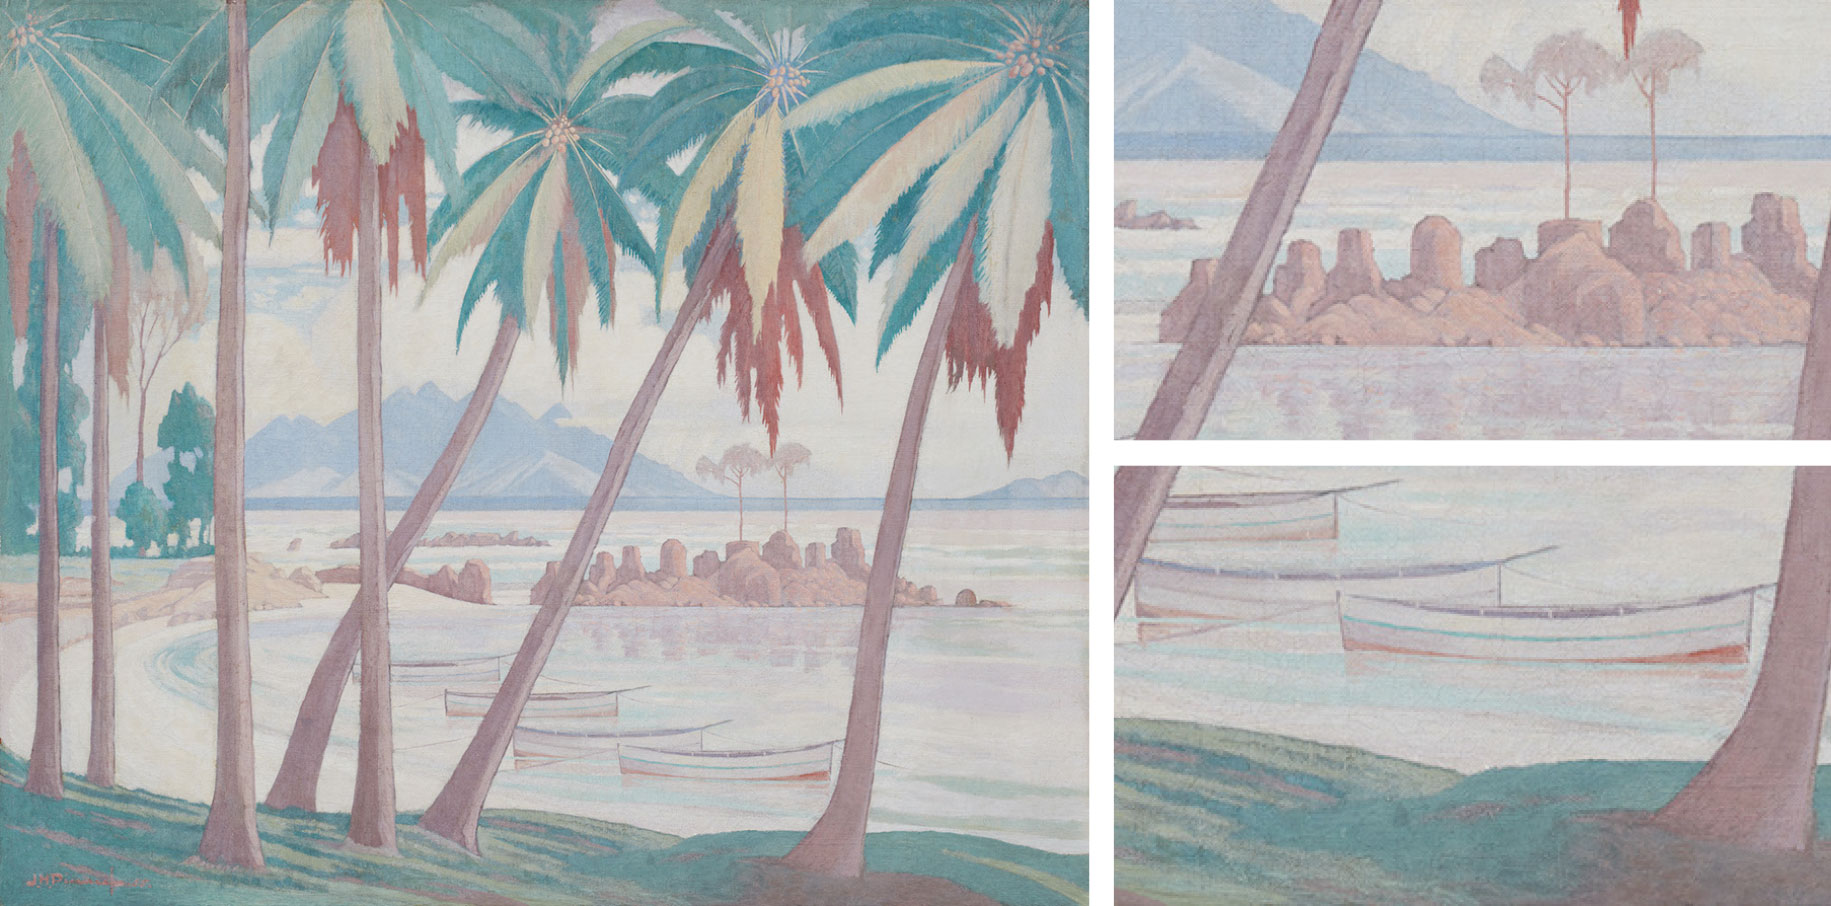 JH_Pierneef-A_View_across_Fishermans_CoveSeychelles-1955-oil_on_canvas-Image_Repro_Pictures_1